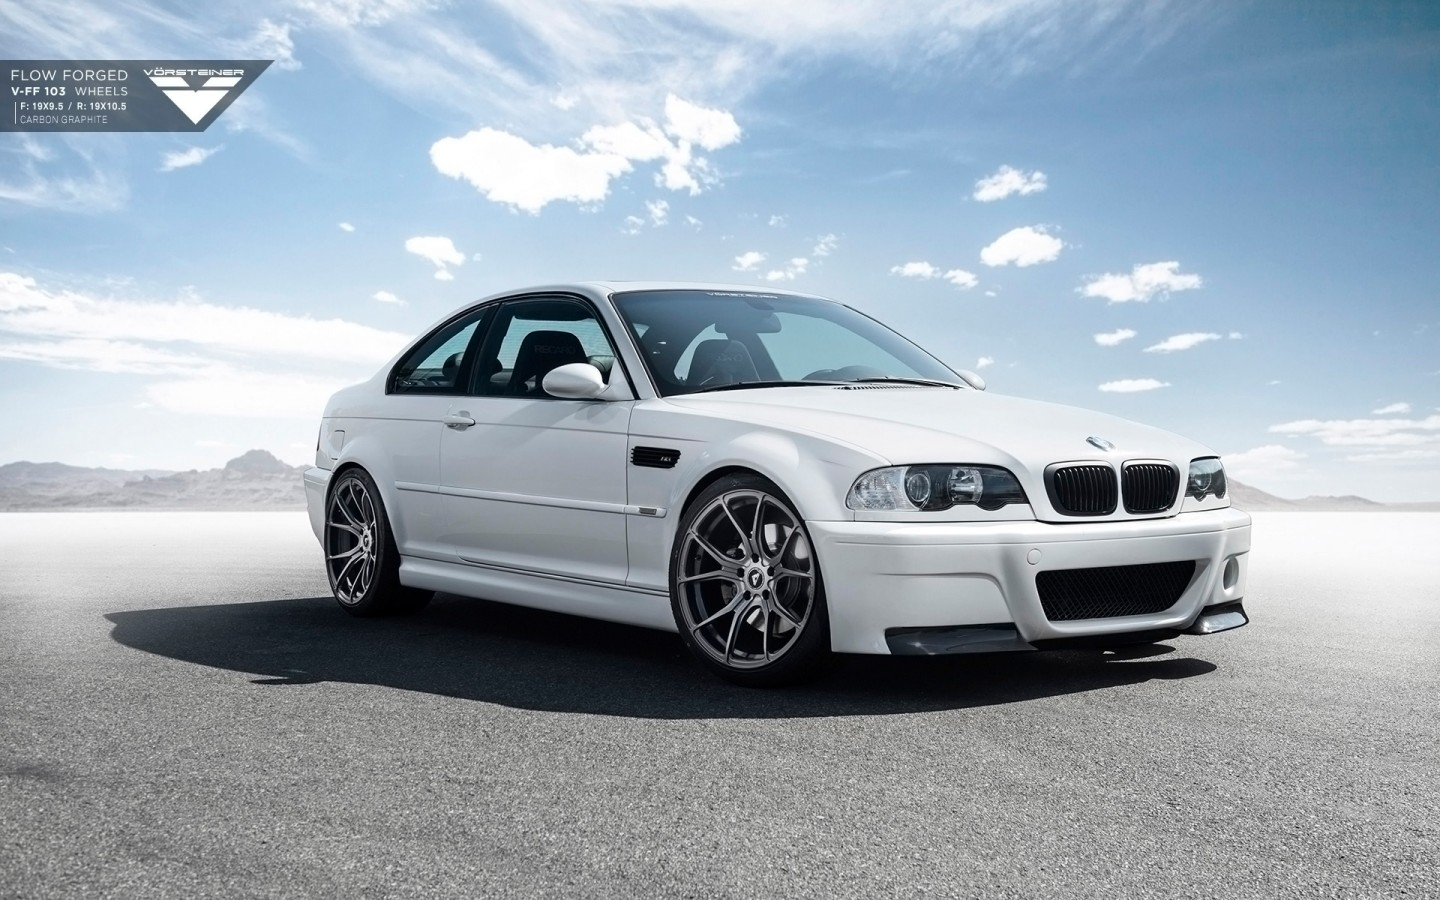 Download Hd Wallpapers Of Audi Cars Vorsteiner Bmw E46 M3 Wallpaper Hd Car Wallpapers Id 5859